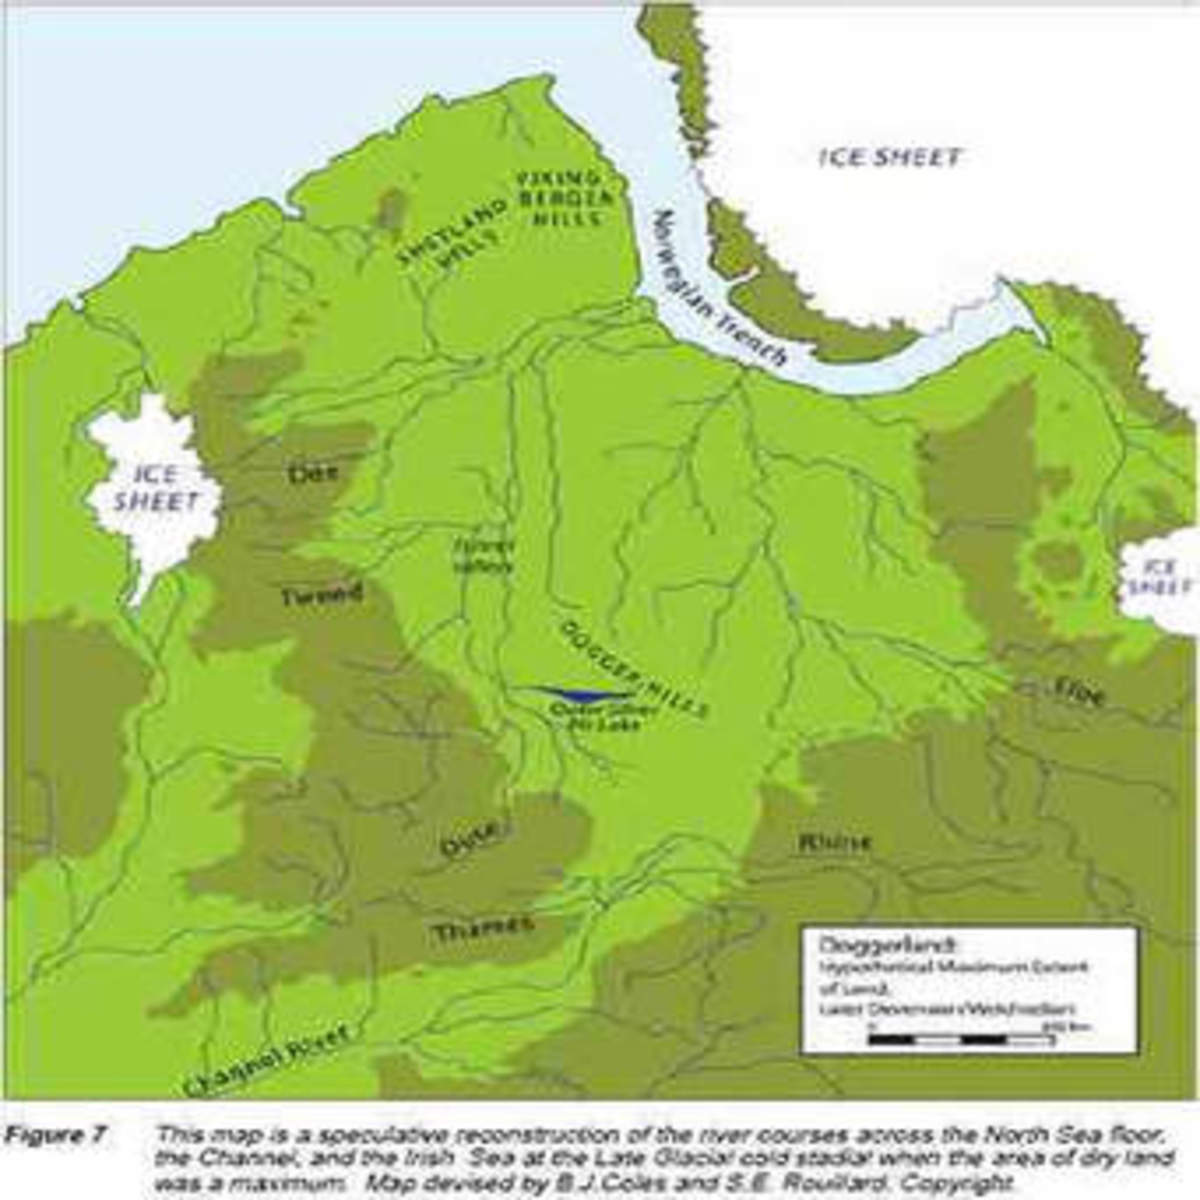 Original extent of Doggerland